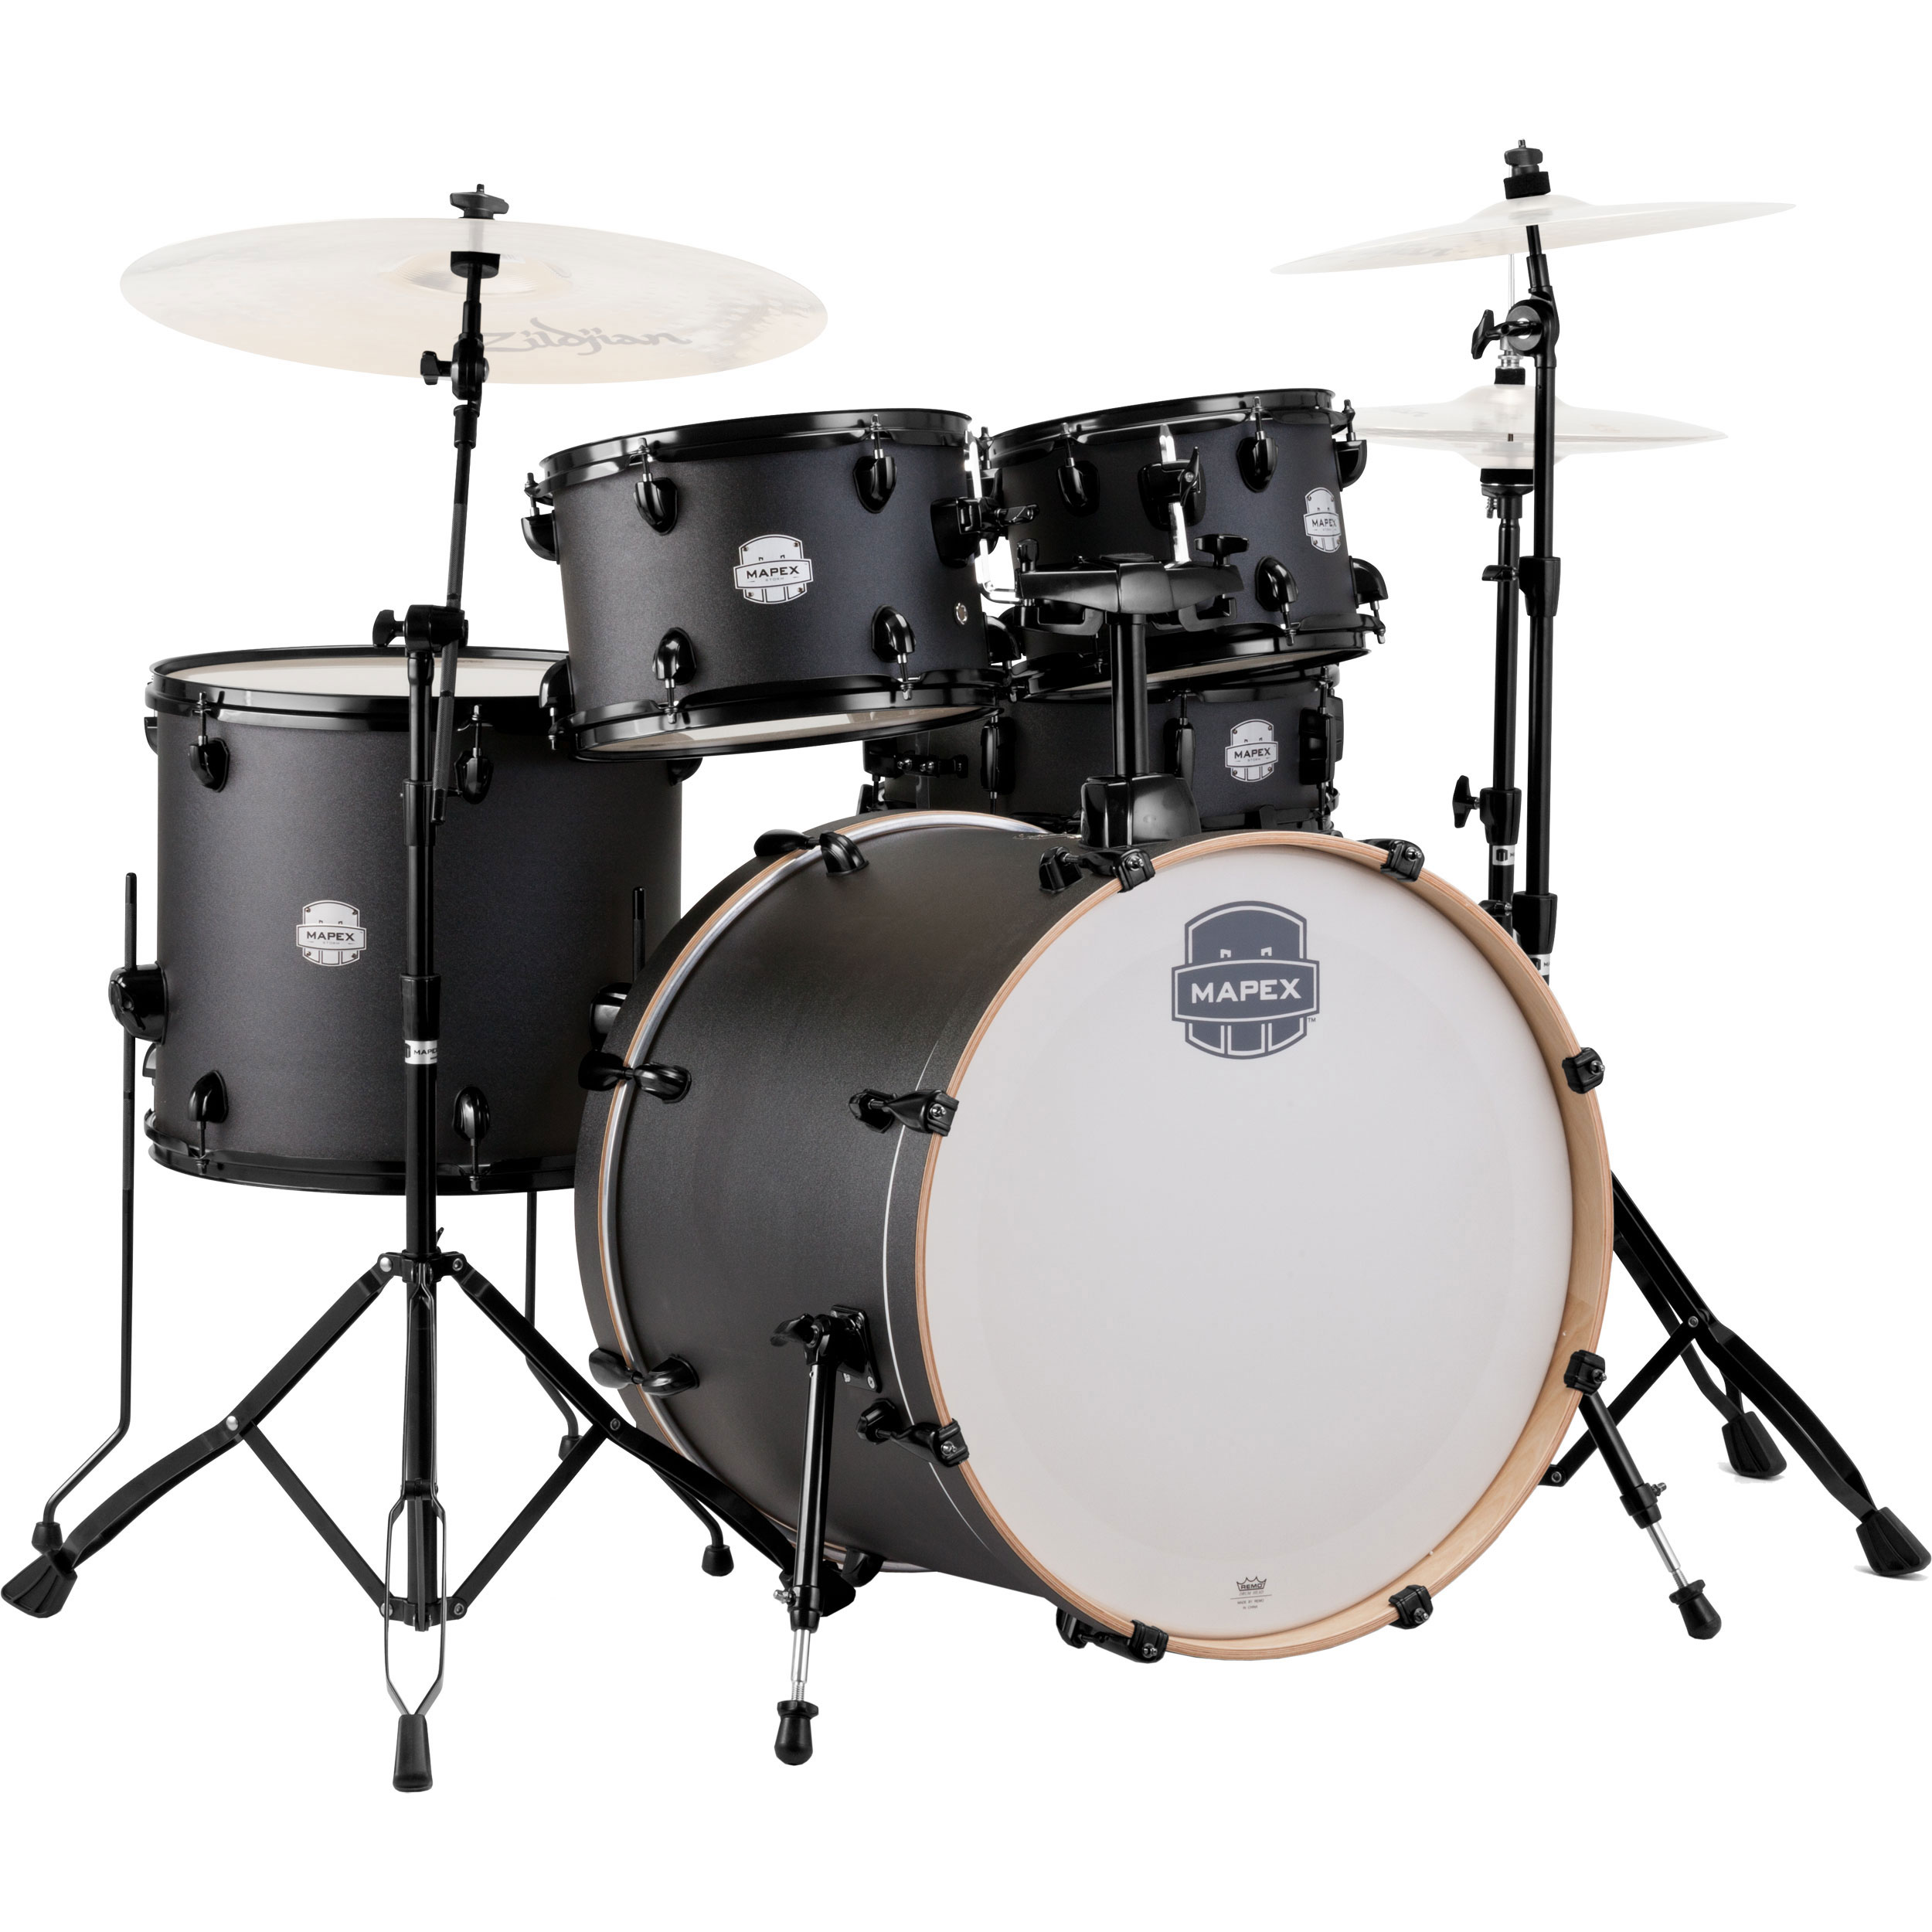 Alternate Image For Mapex Storm 5 Piece Fusion Drum Set 20